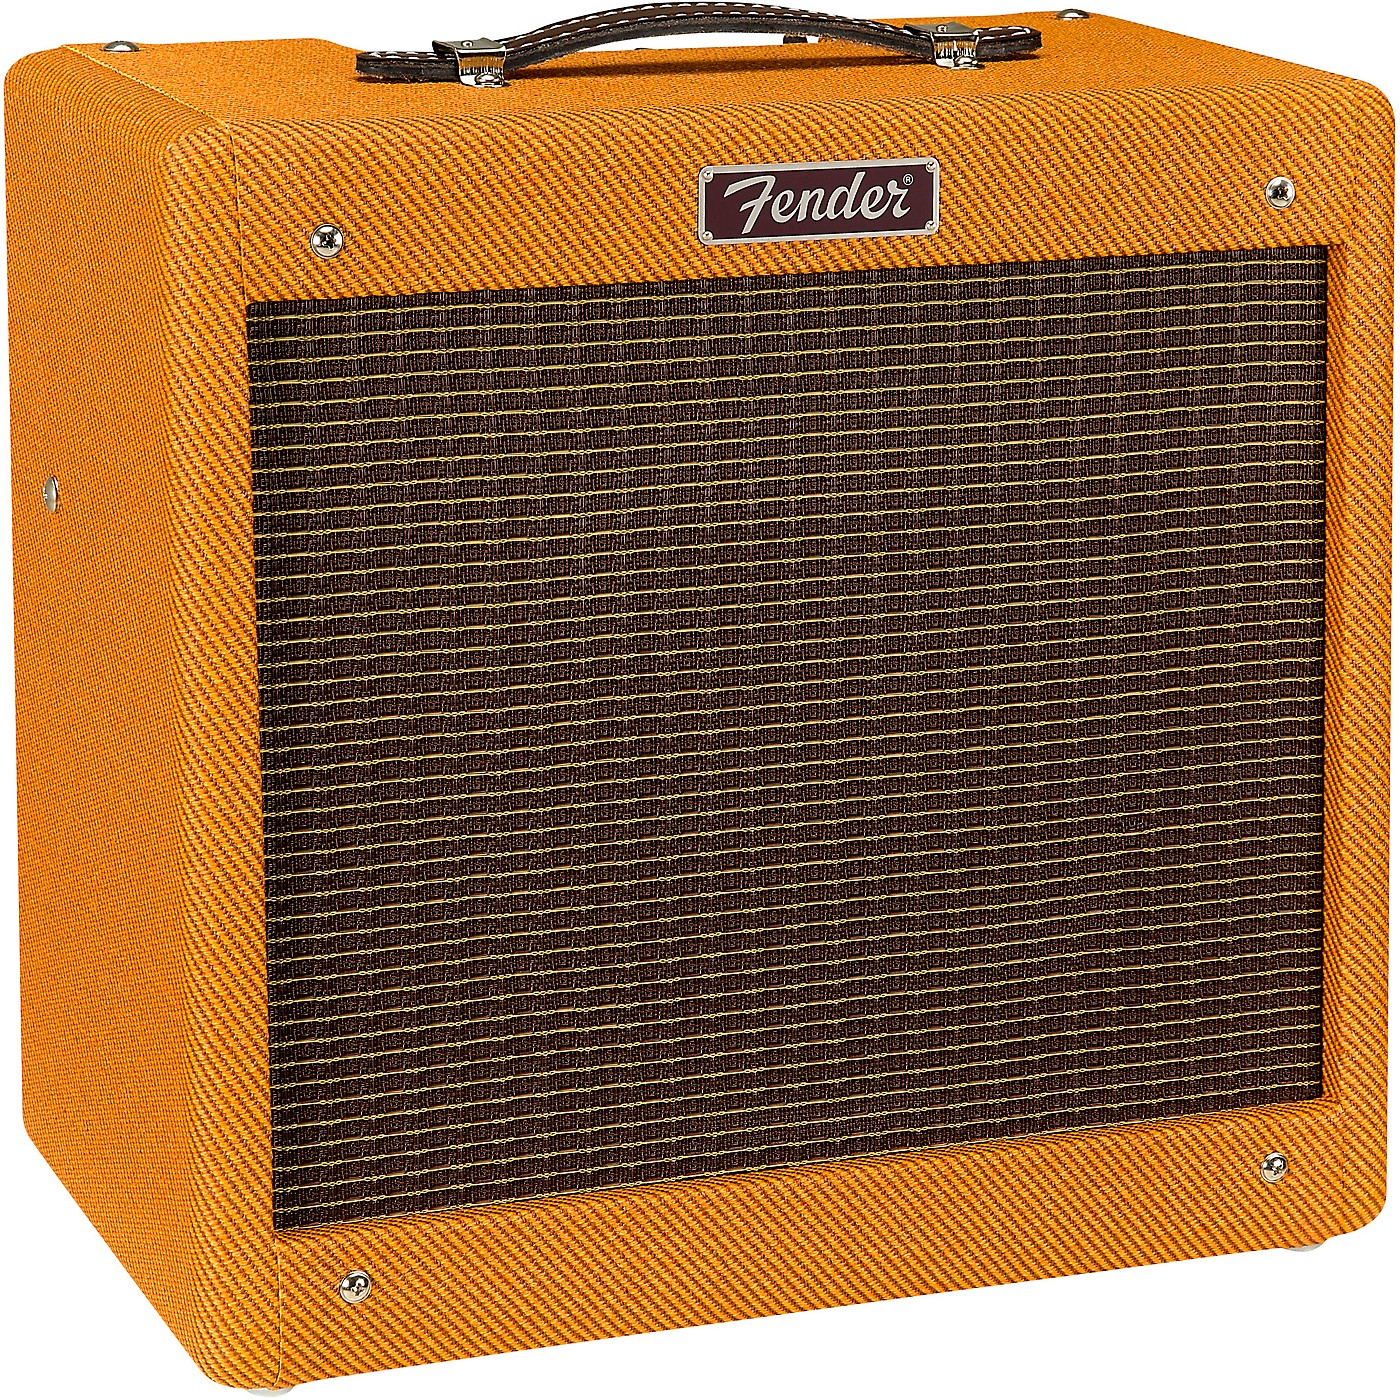 Fender Pro Junior IV 15W 1x10 Tube Guitar Combo Amplifier thumbnail